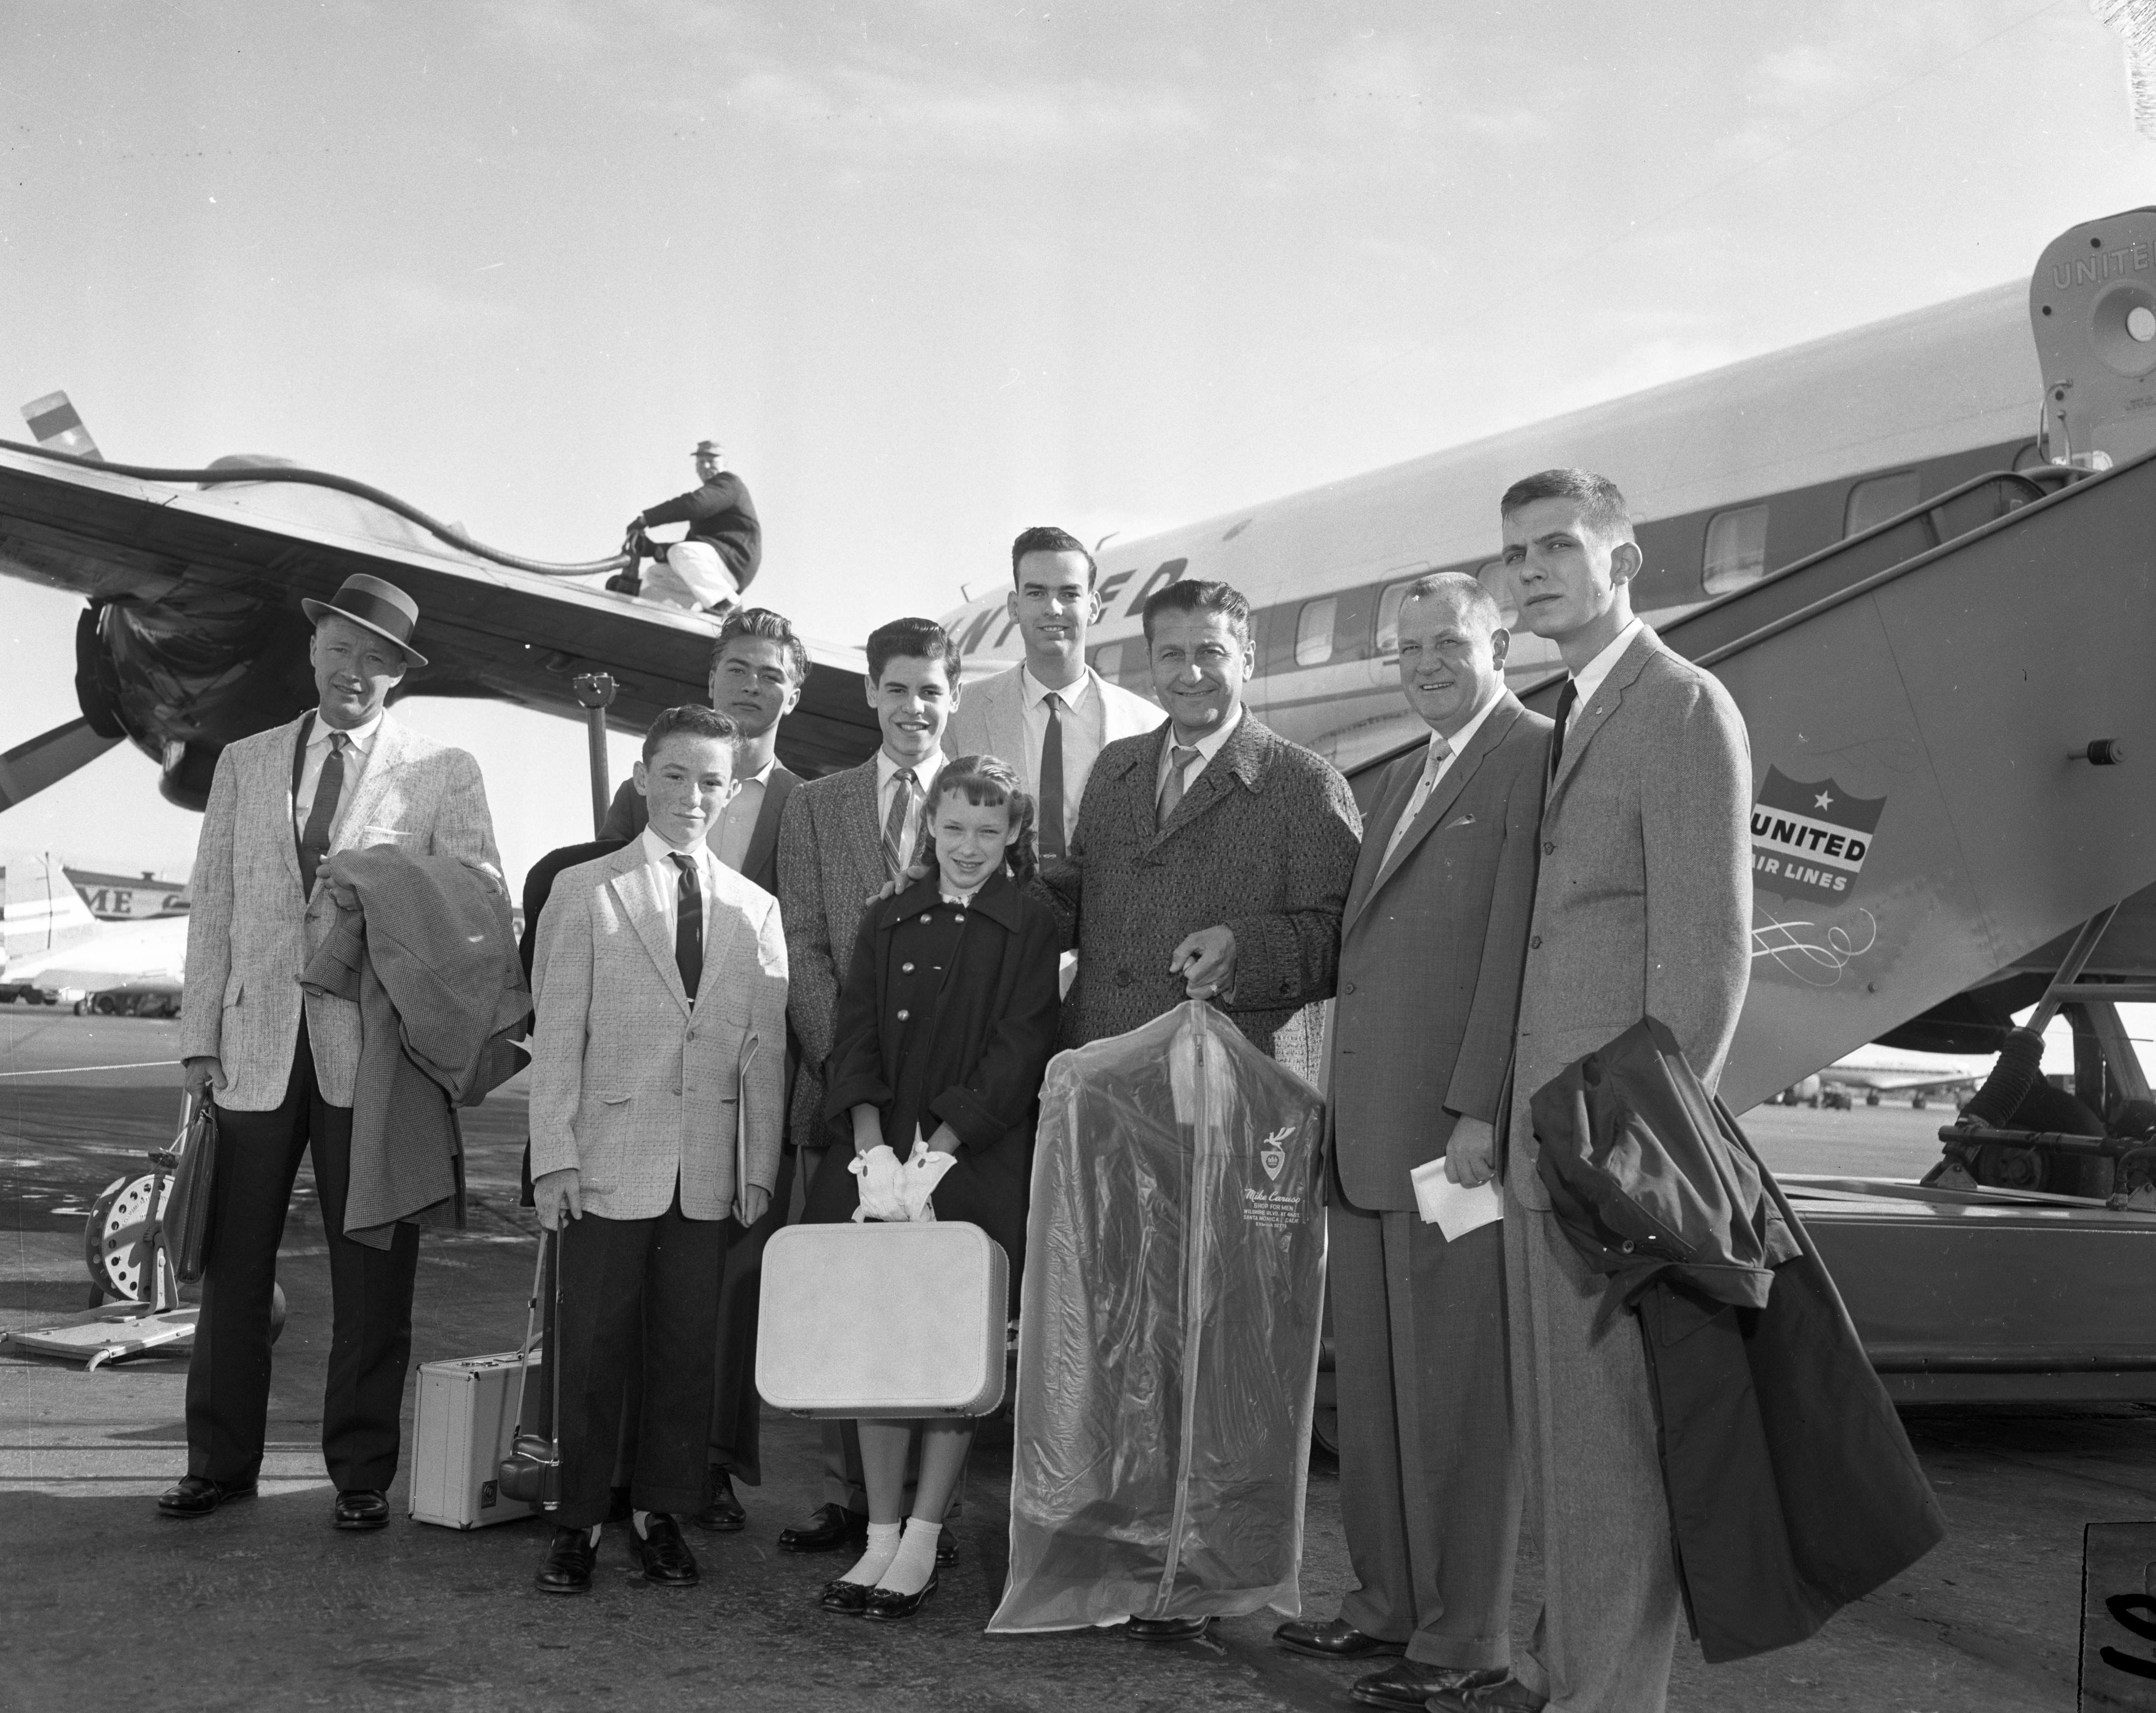 Lawrence Welk and members of his show at Willow Run Airport, May 1959 image